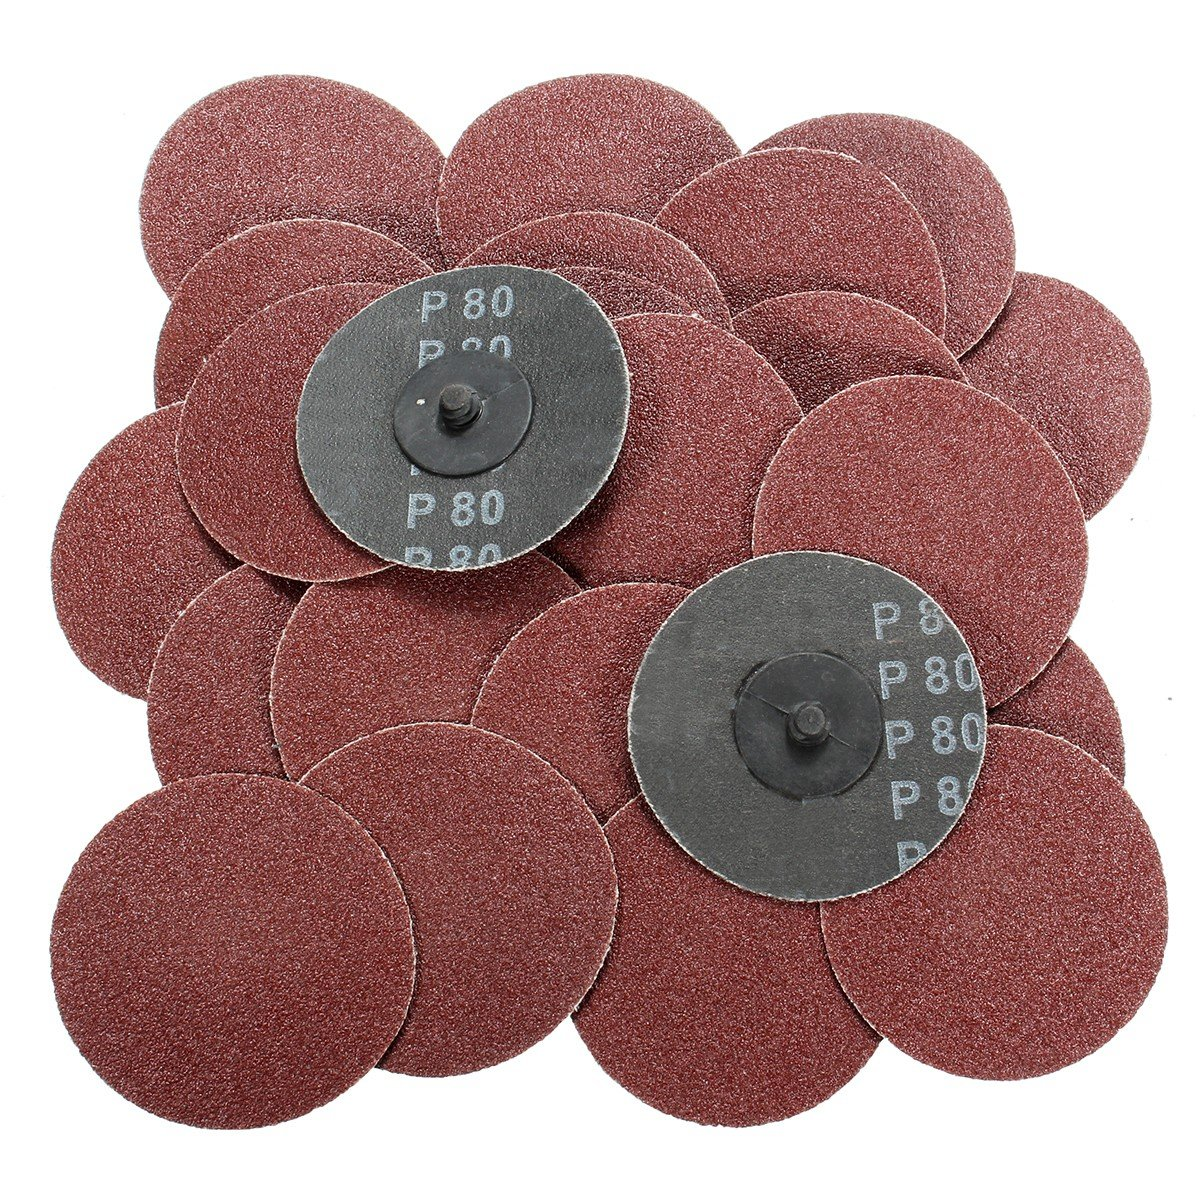 Jeteven 3 Inch 80 Grit Roll Lock Sanding Discs 50 PCS Grinding Discs Abrasive Paper Sandpaper High Density Planting Sand for Rotary Tools 3 Inch